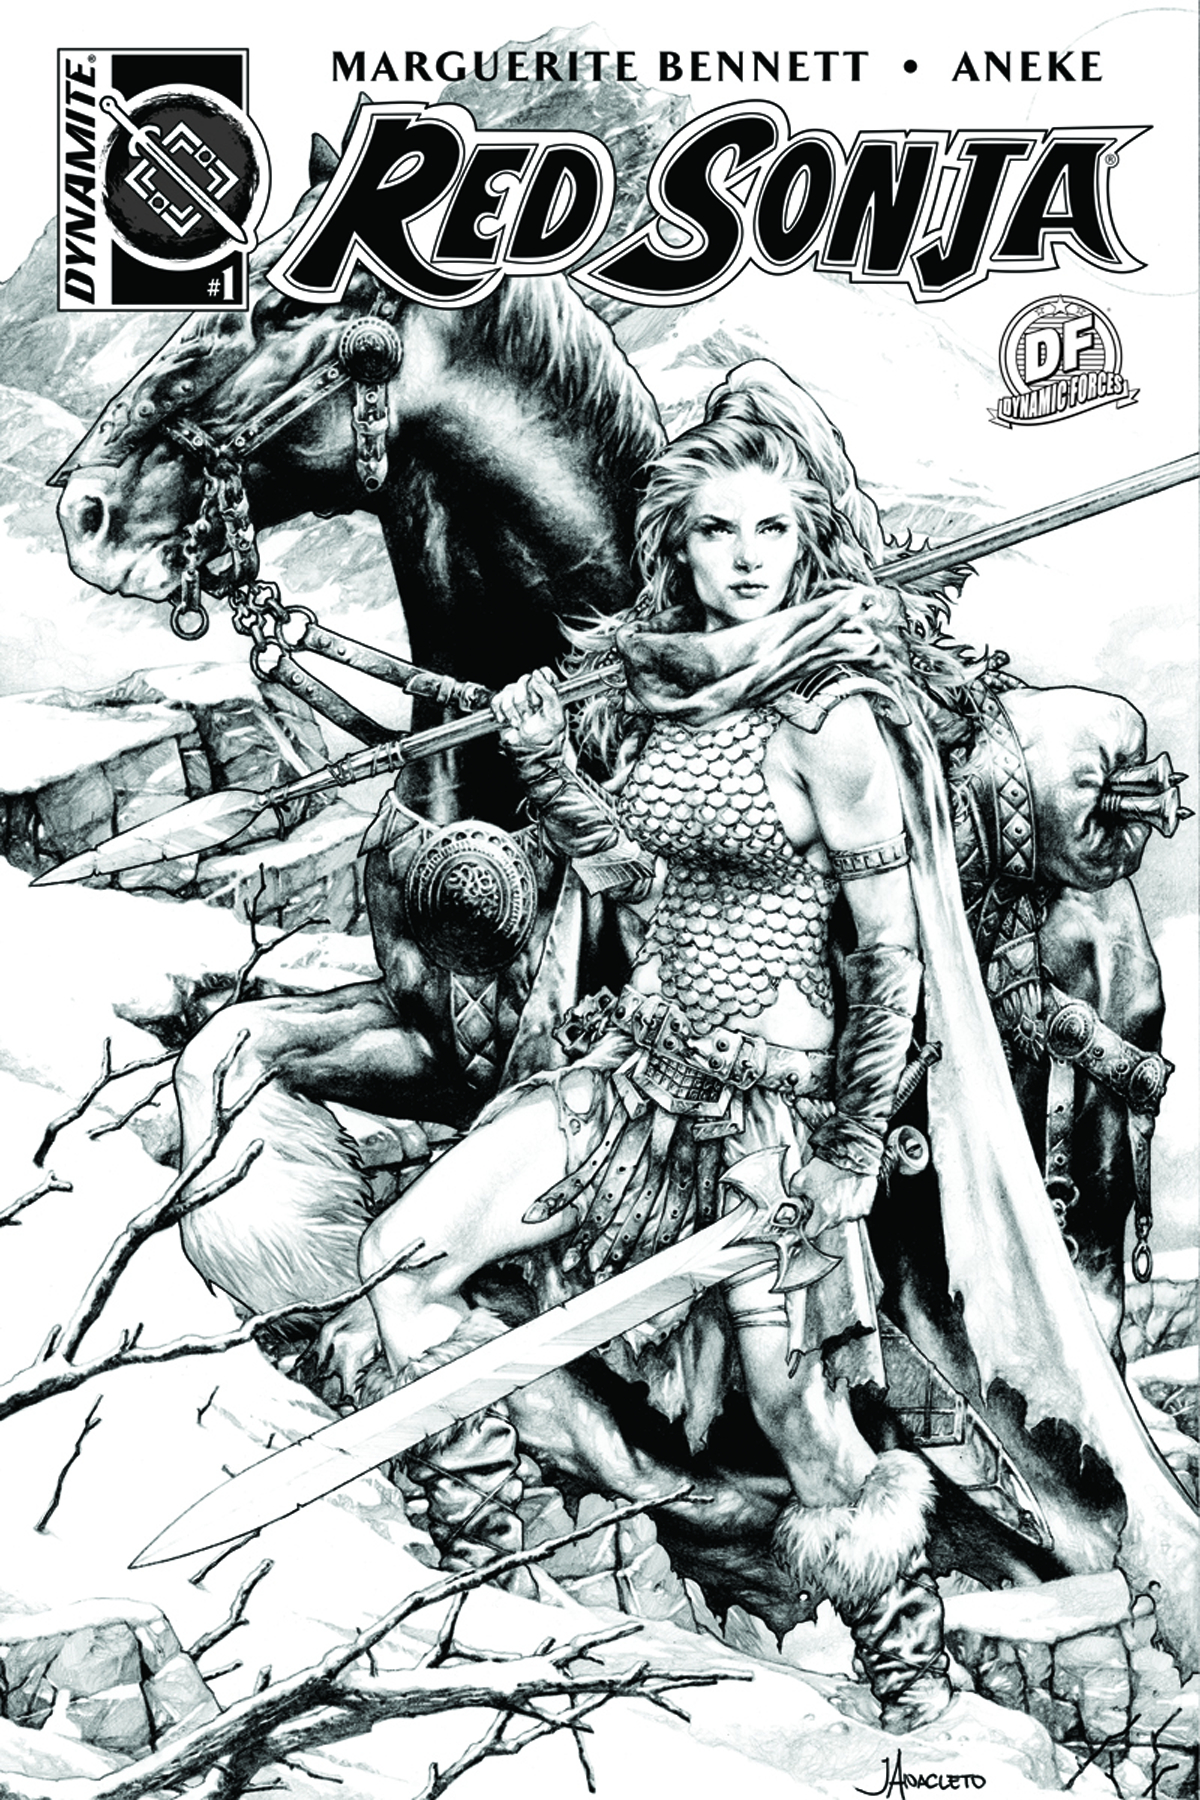 DF RED SONJA VOL 3 #1 DF EXC B&W LINE ART ANACLETO